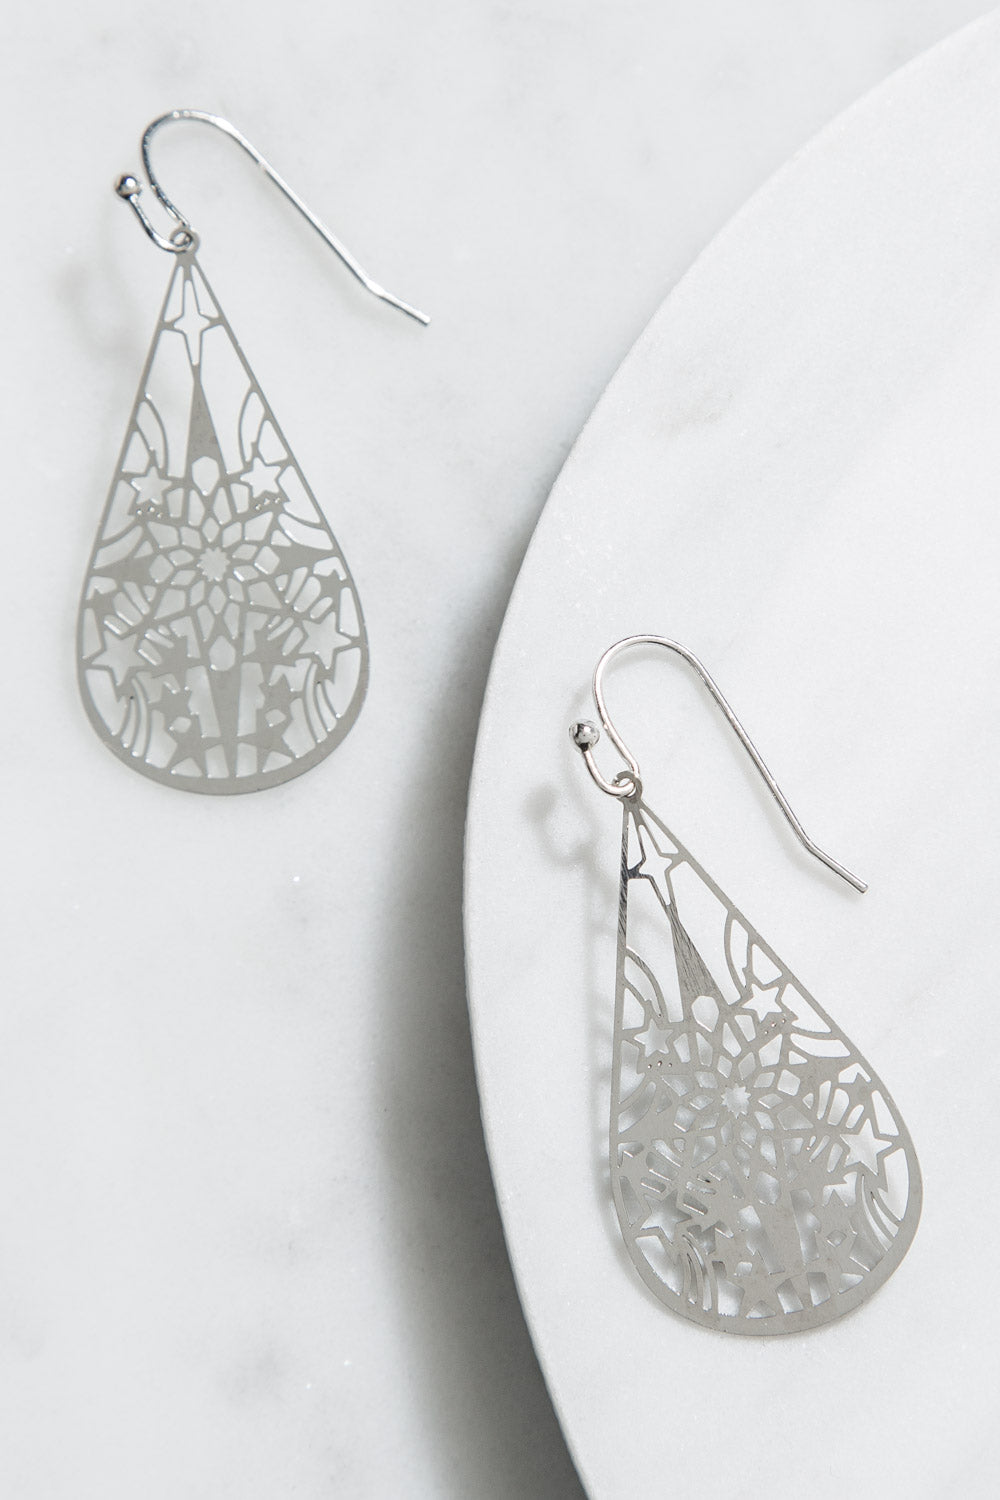 Type 2 Wishing Star Earrings